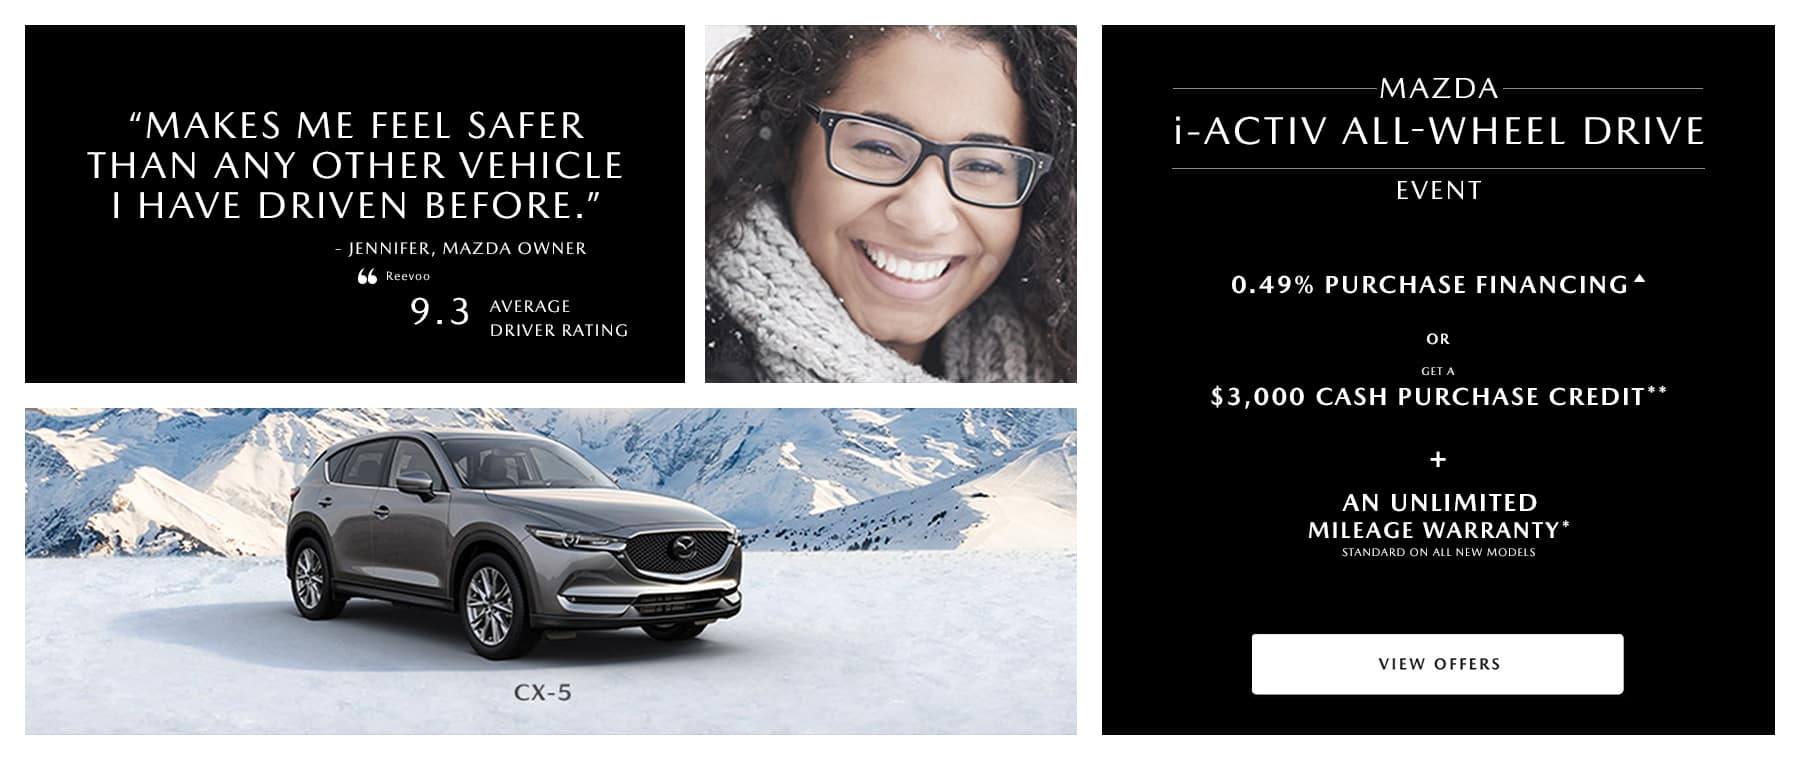 smiling woman with gray mazda suv